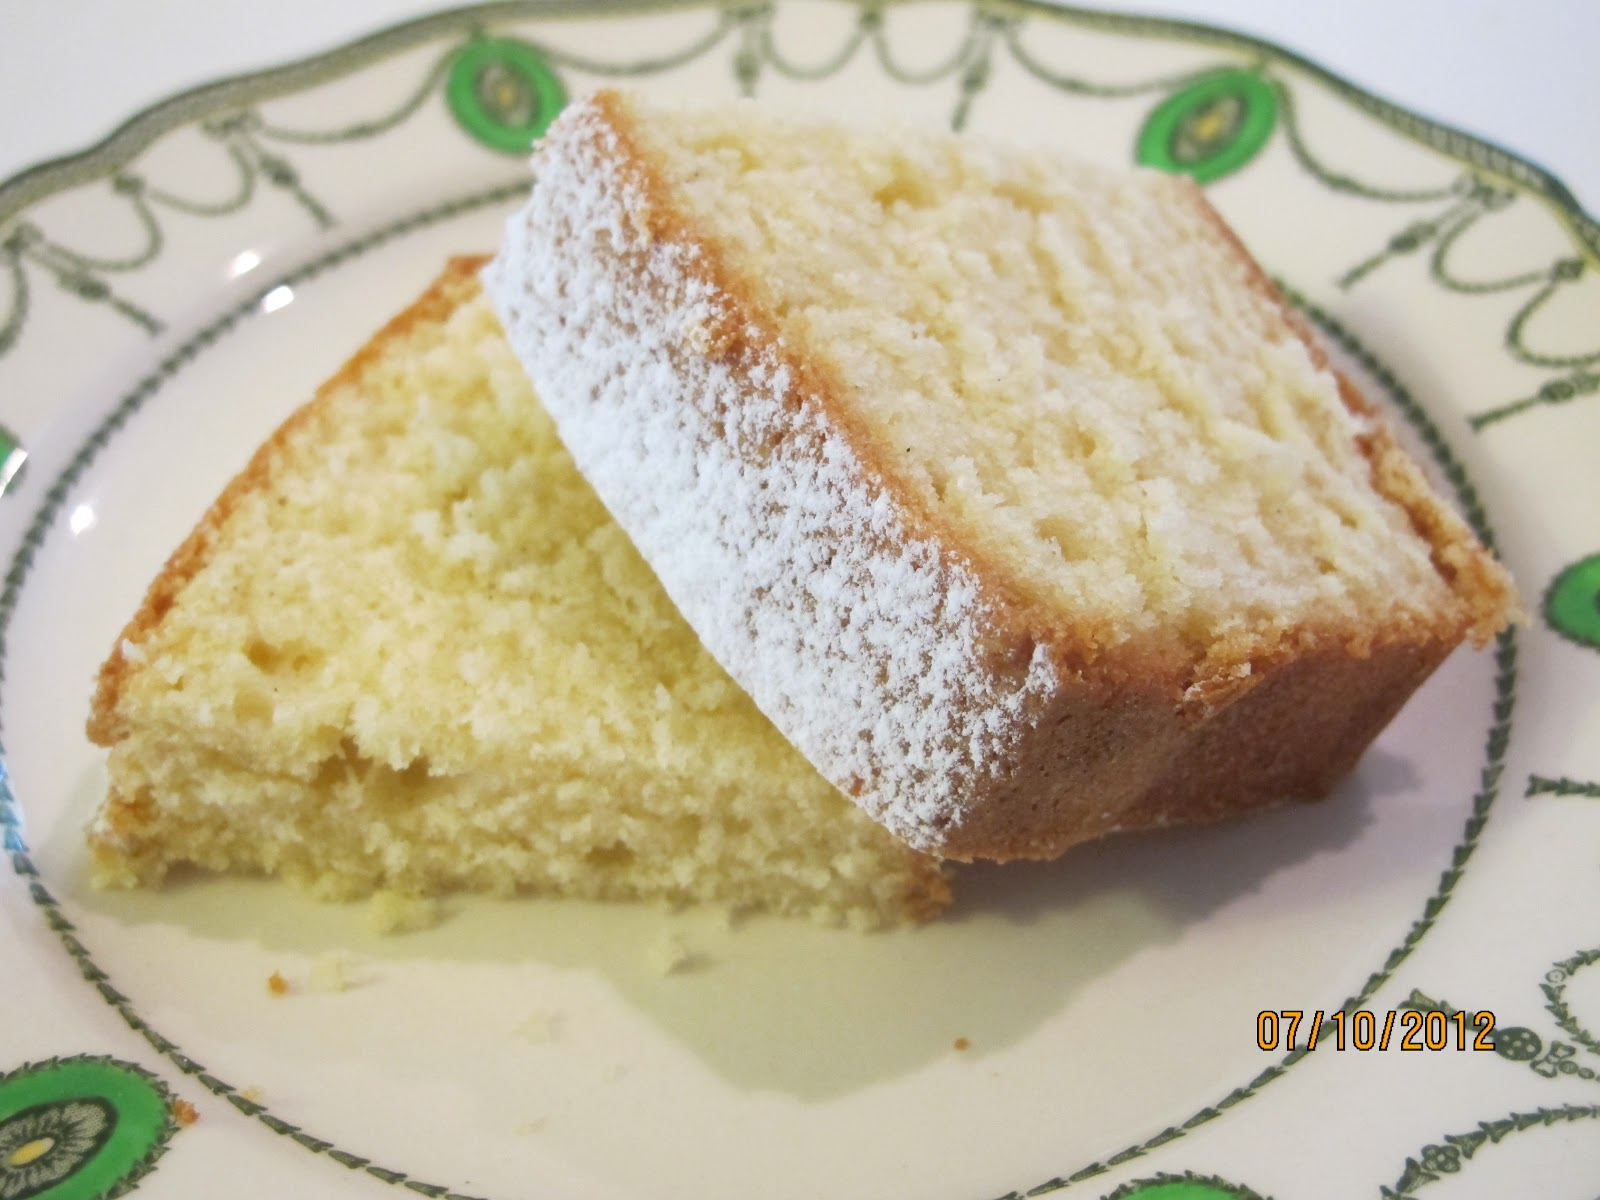 Simple Butter Cake Images : It s all about family and food: Basic Vanilla Butter Cake